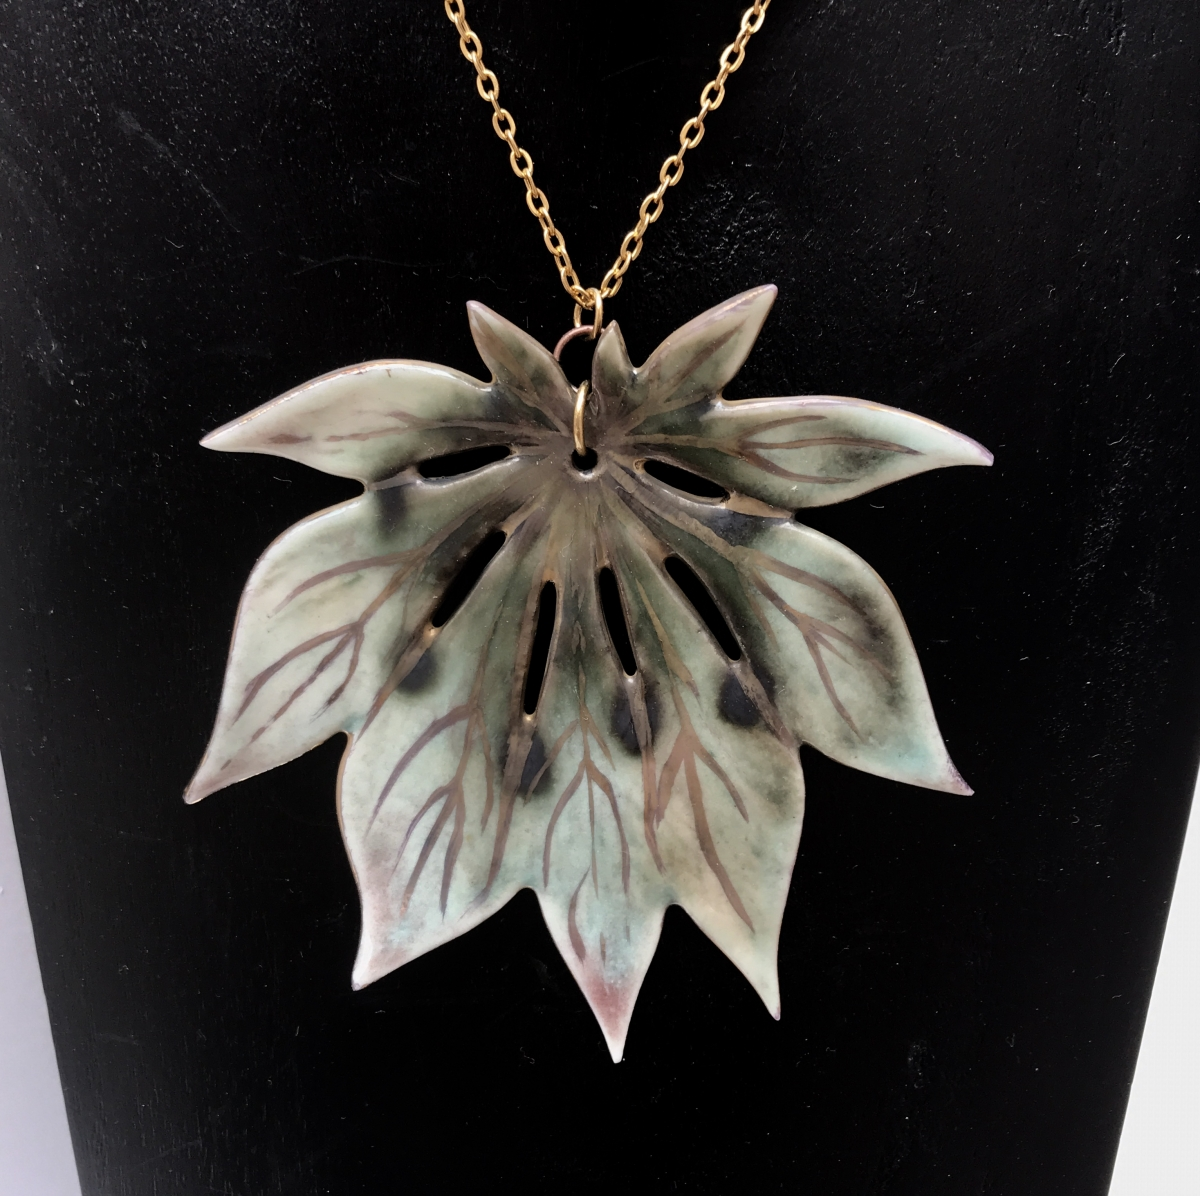 Ceramic Jewellery by 'Ceramics Inspired by Nature' - Sonya Ceramic Art